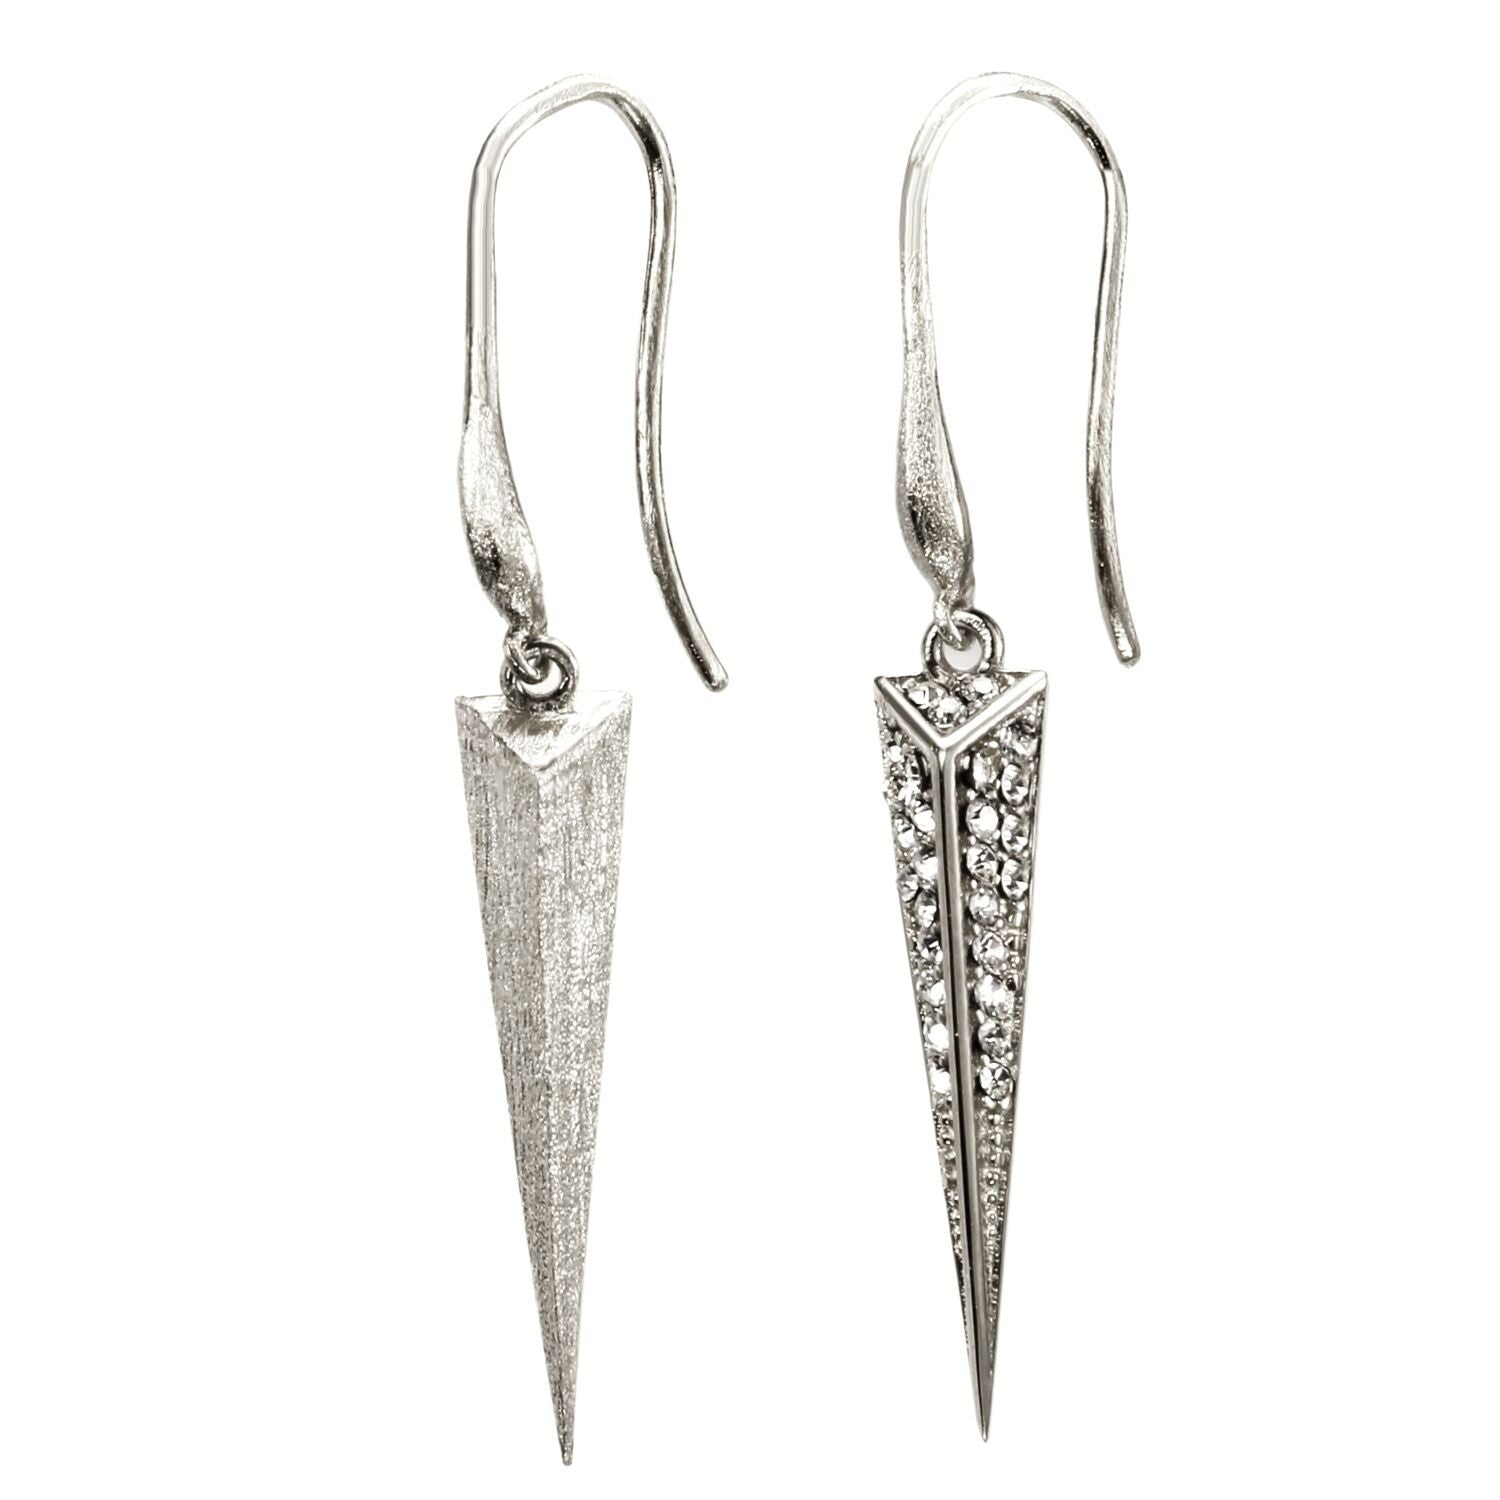 Mantra Dagger Drop Earrings, rhodium, Swarovski crystals